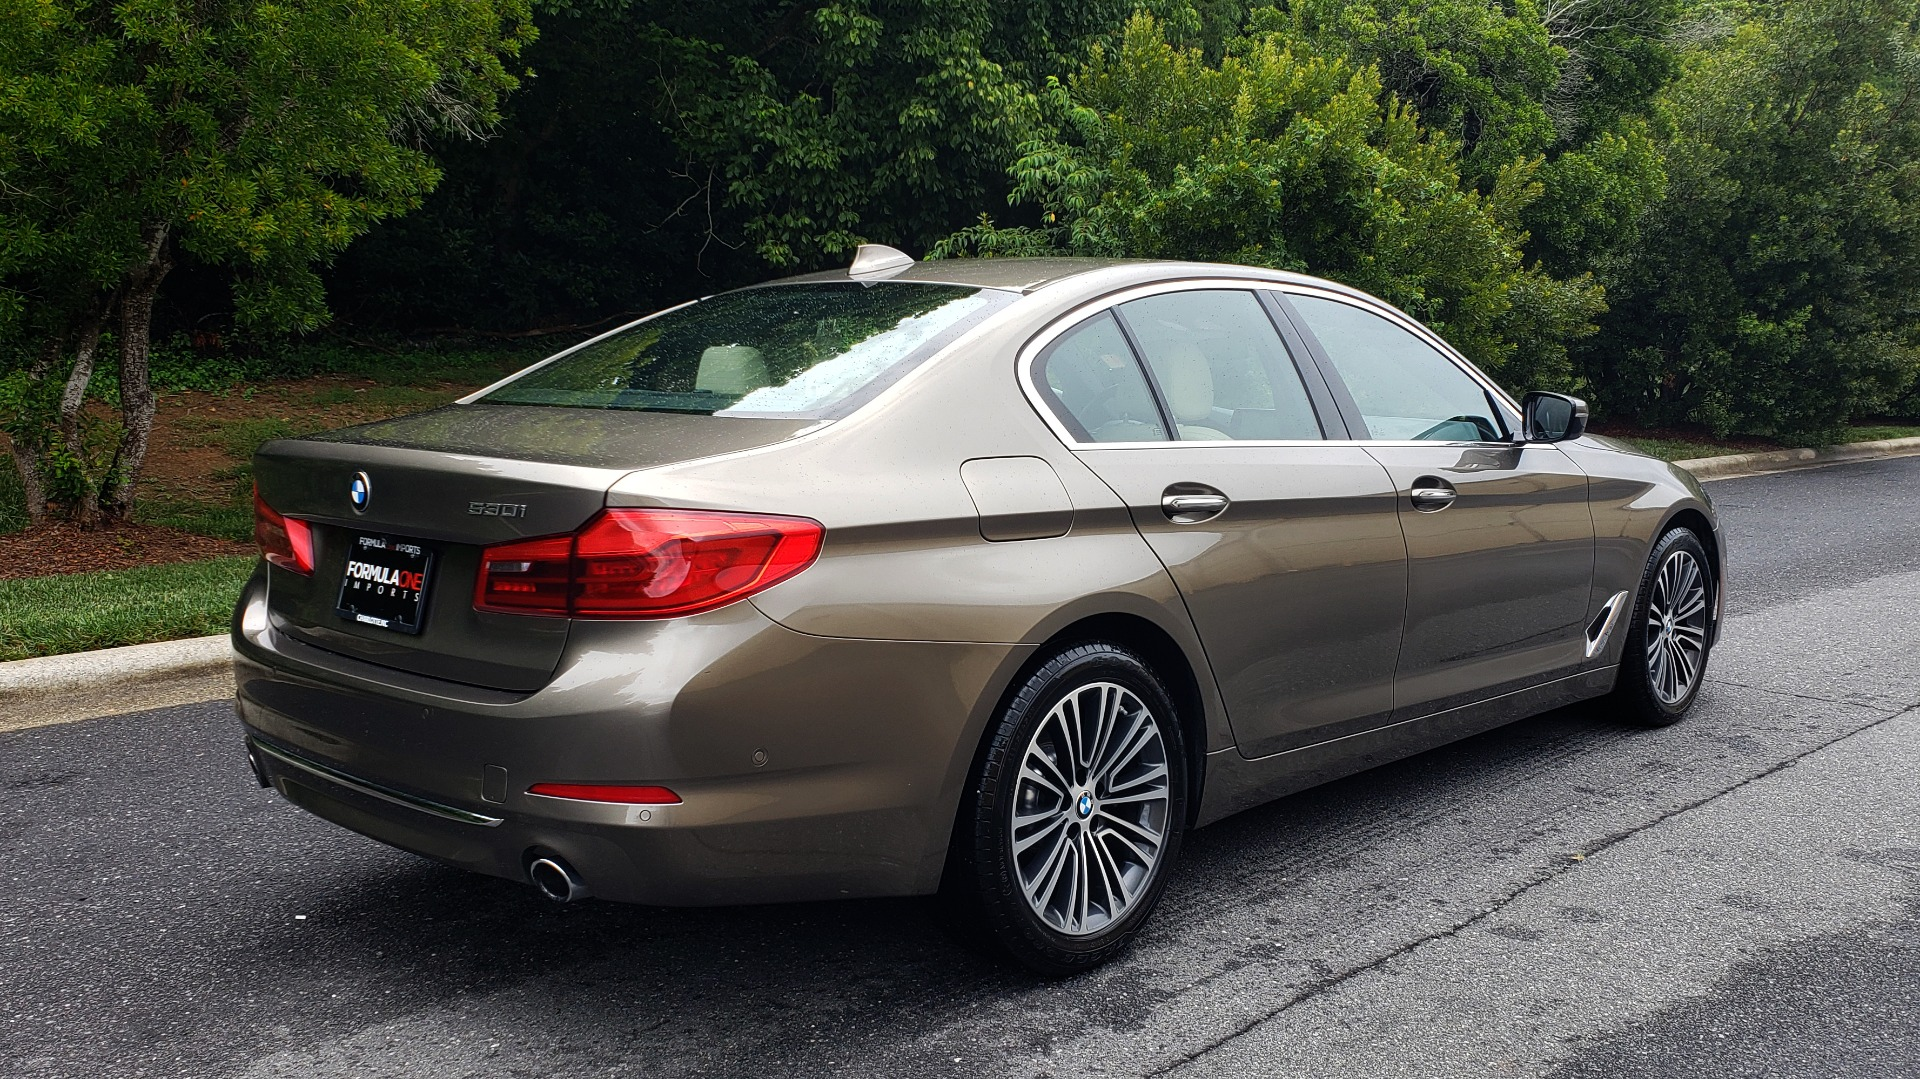 Used 2017 BMW 5 SERIES 530I PREMIUM / NAV / SUNROOF / DRVR ASST PLUS II / LUXURY for sale Sold at Formula Imports in Charlotte NC 28227 9